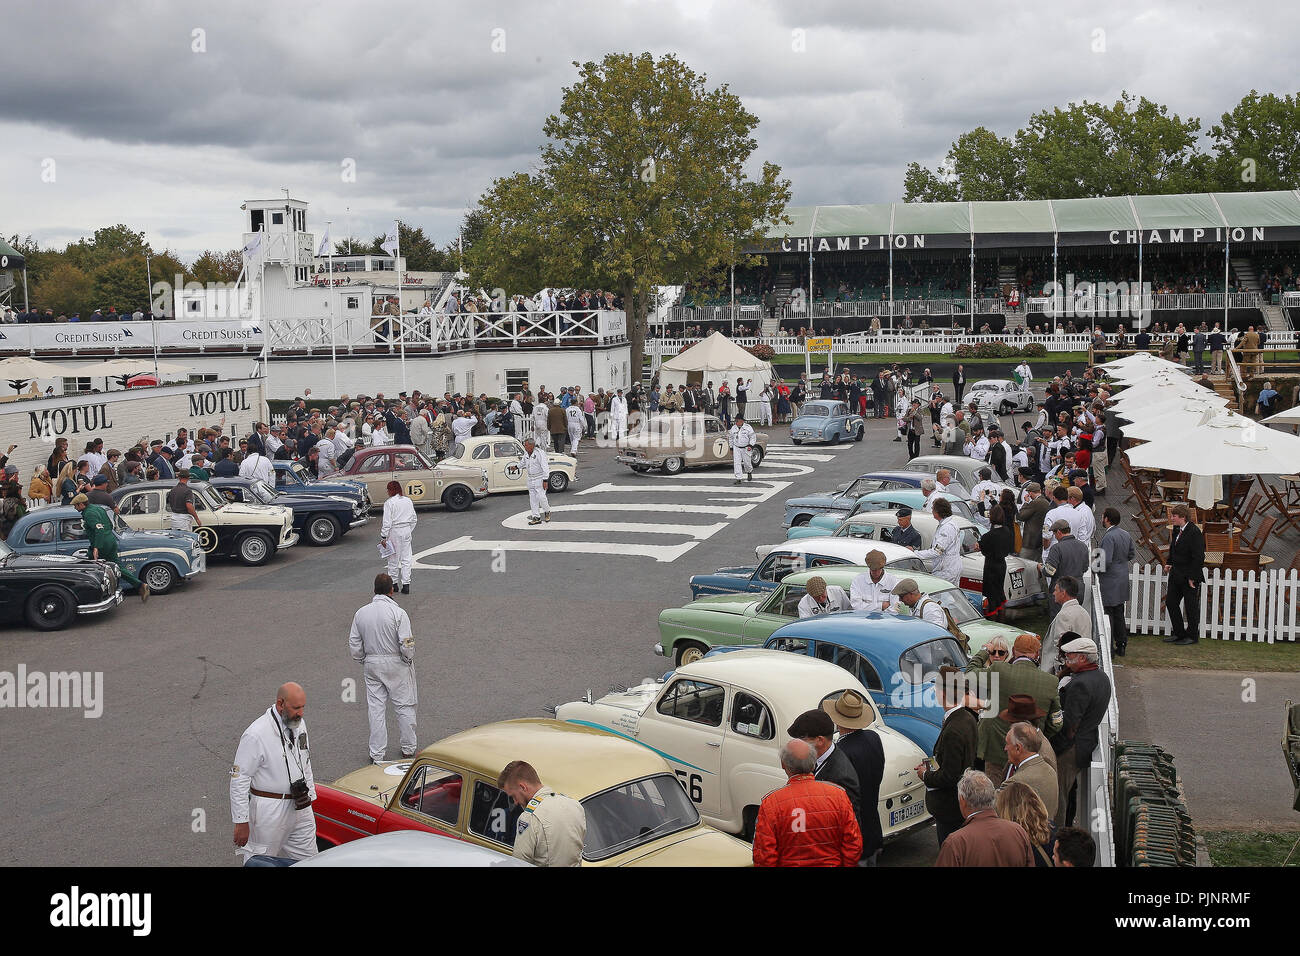 Goodwood, West Sussex, UK. 8th September 2018. cars joint the track for Jack Sears Memorial Trophy race at the Goodwood Revival in Goodwood, West Sussex, UK. © Malcolm Greig/Alamy Live News Stock Photo